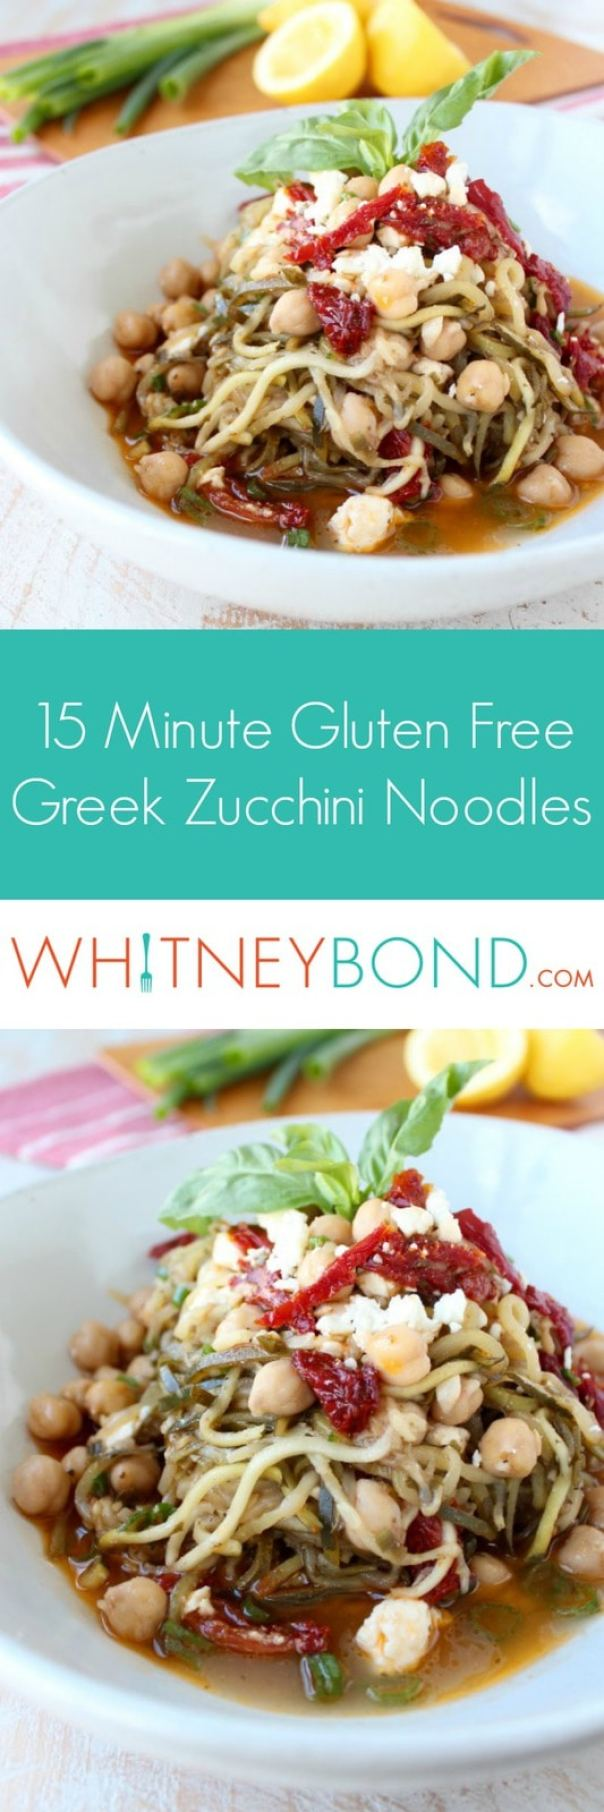 15 Minute Greek Zucchini Noodles Recipe